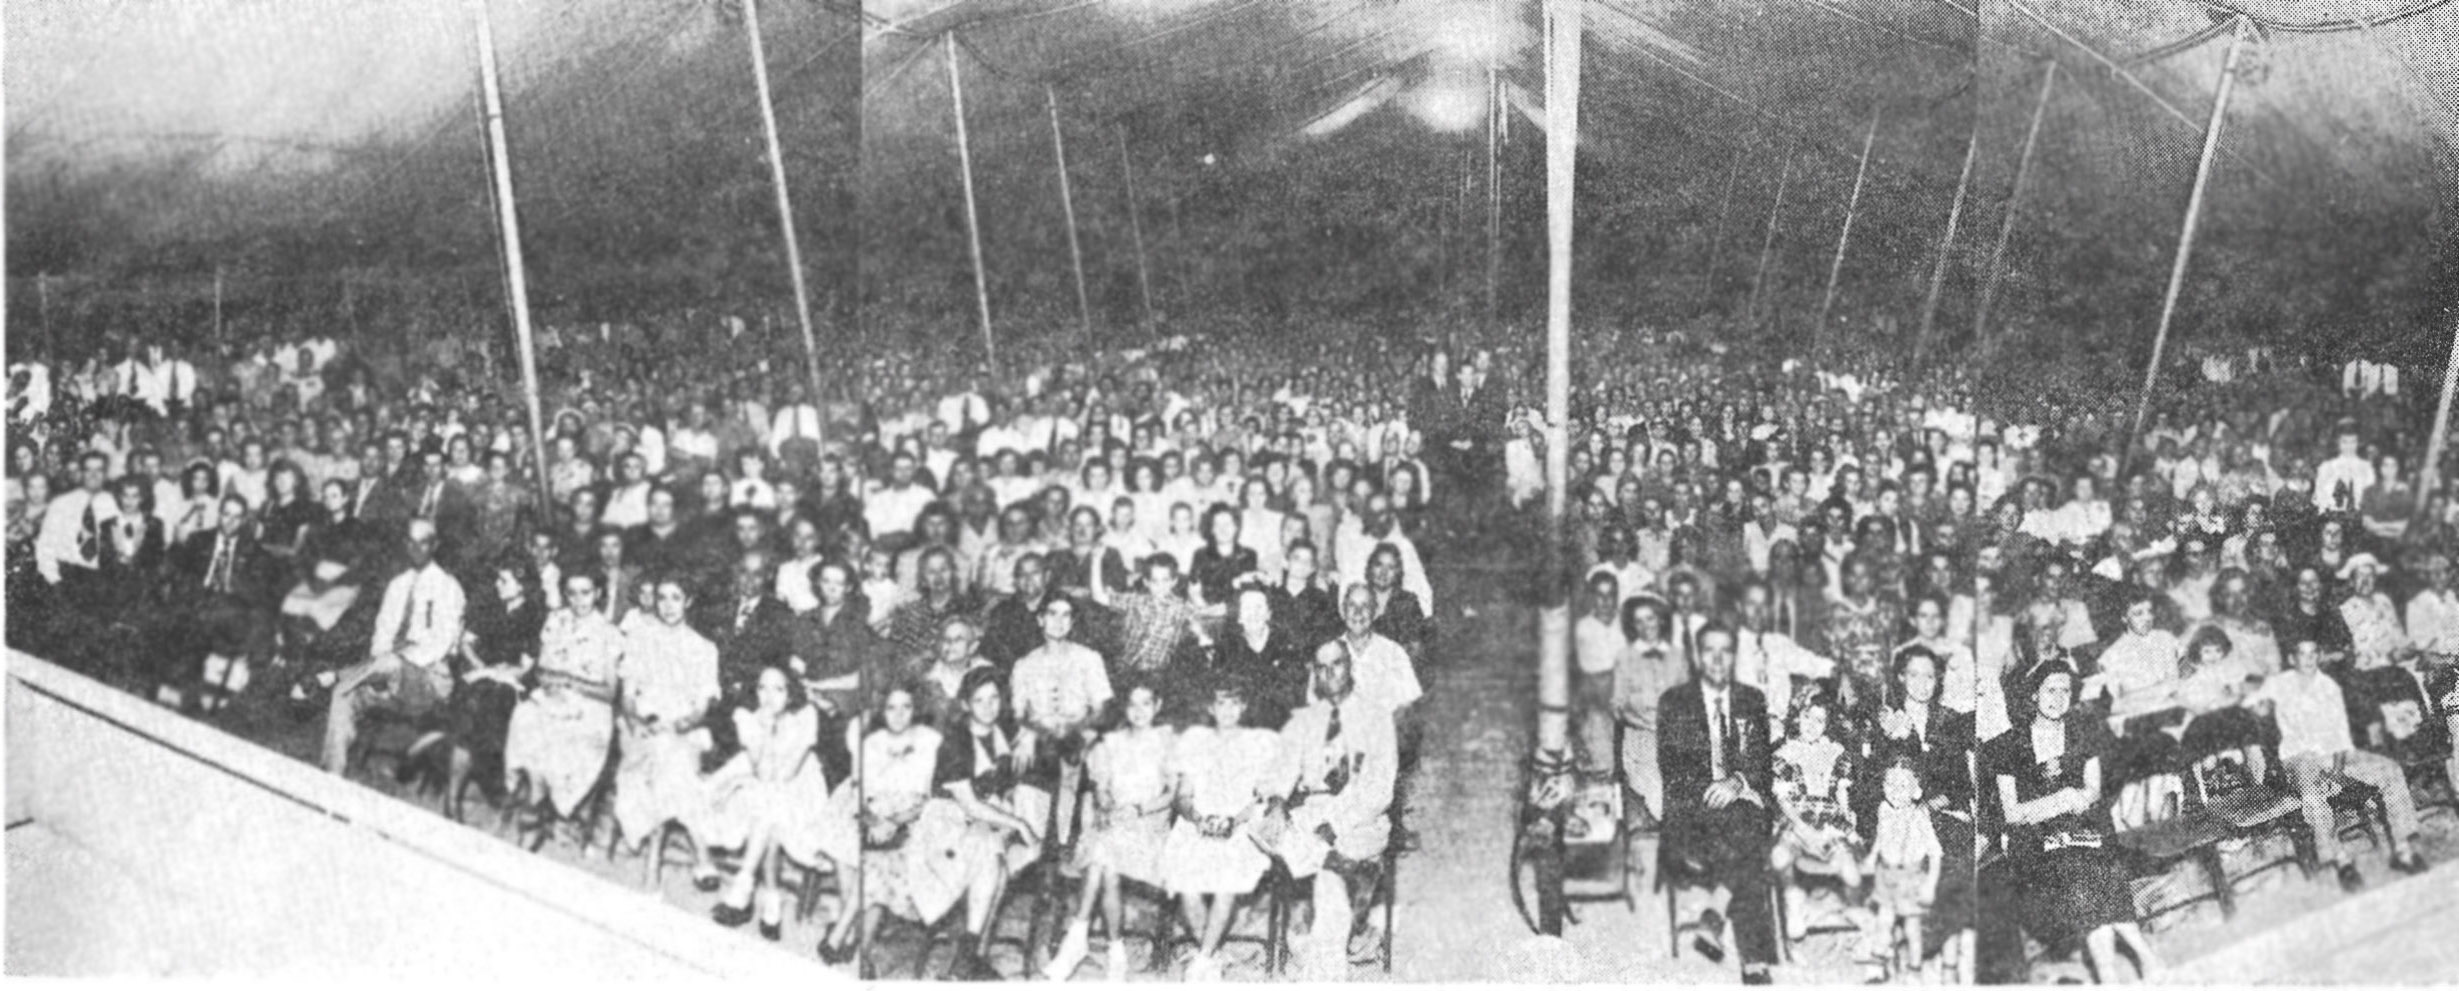 Tent Meeting held by Gayle Jackson. Dallas, Texas, August, 1960.